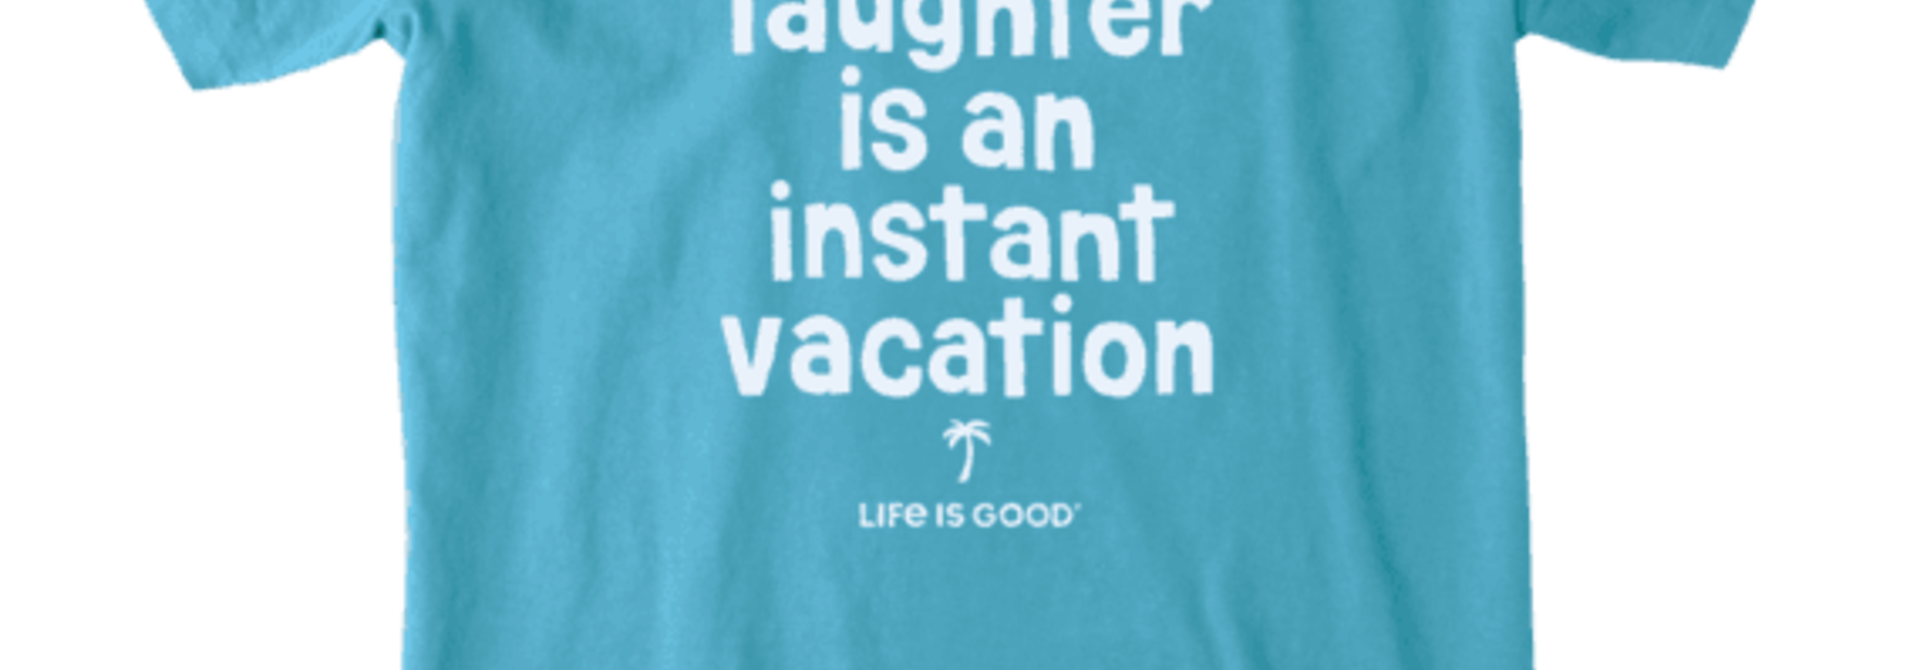 Laughter is an instant vacation T-shirt